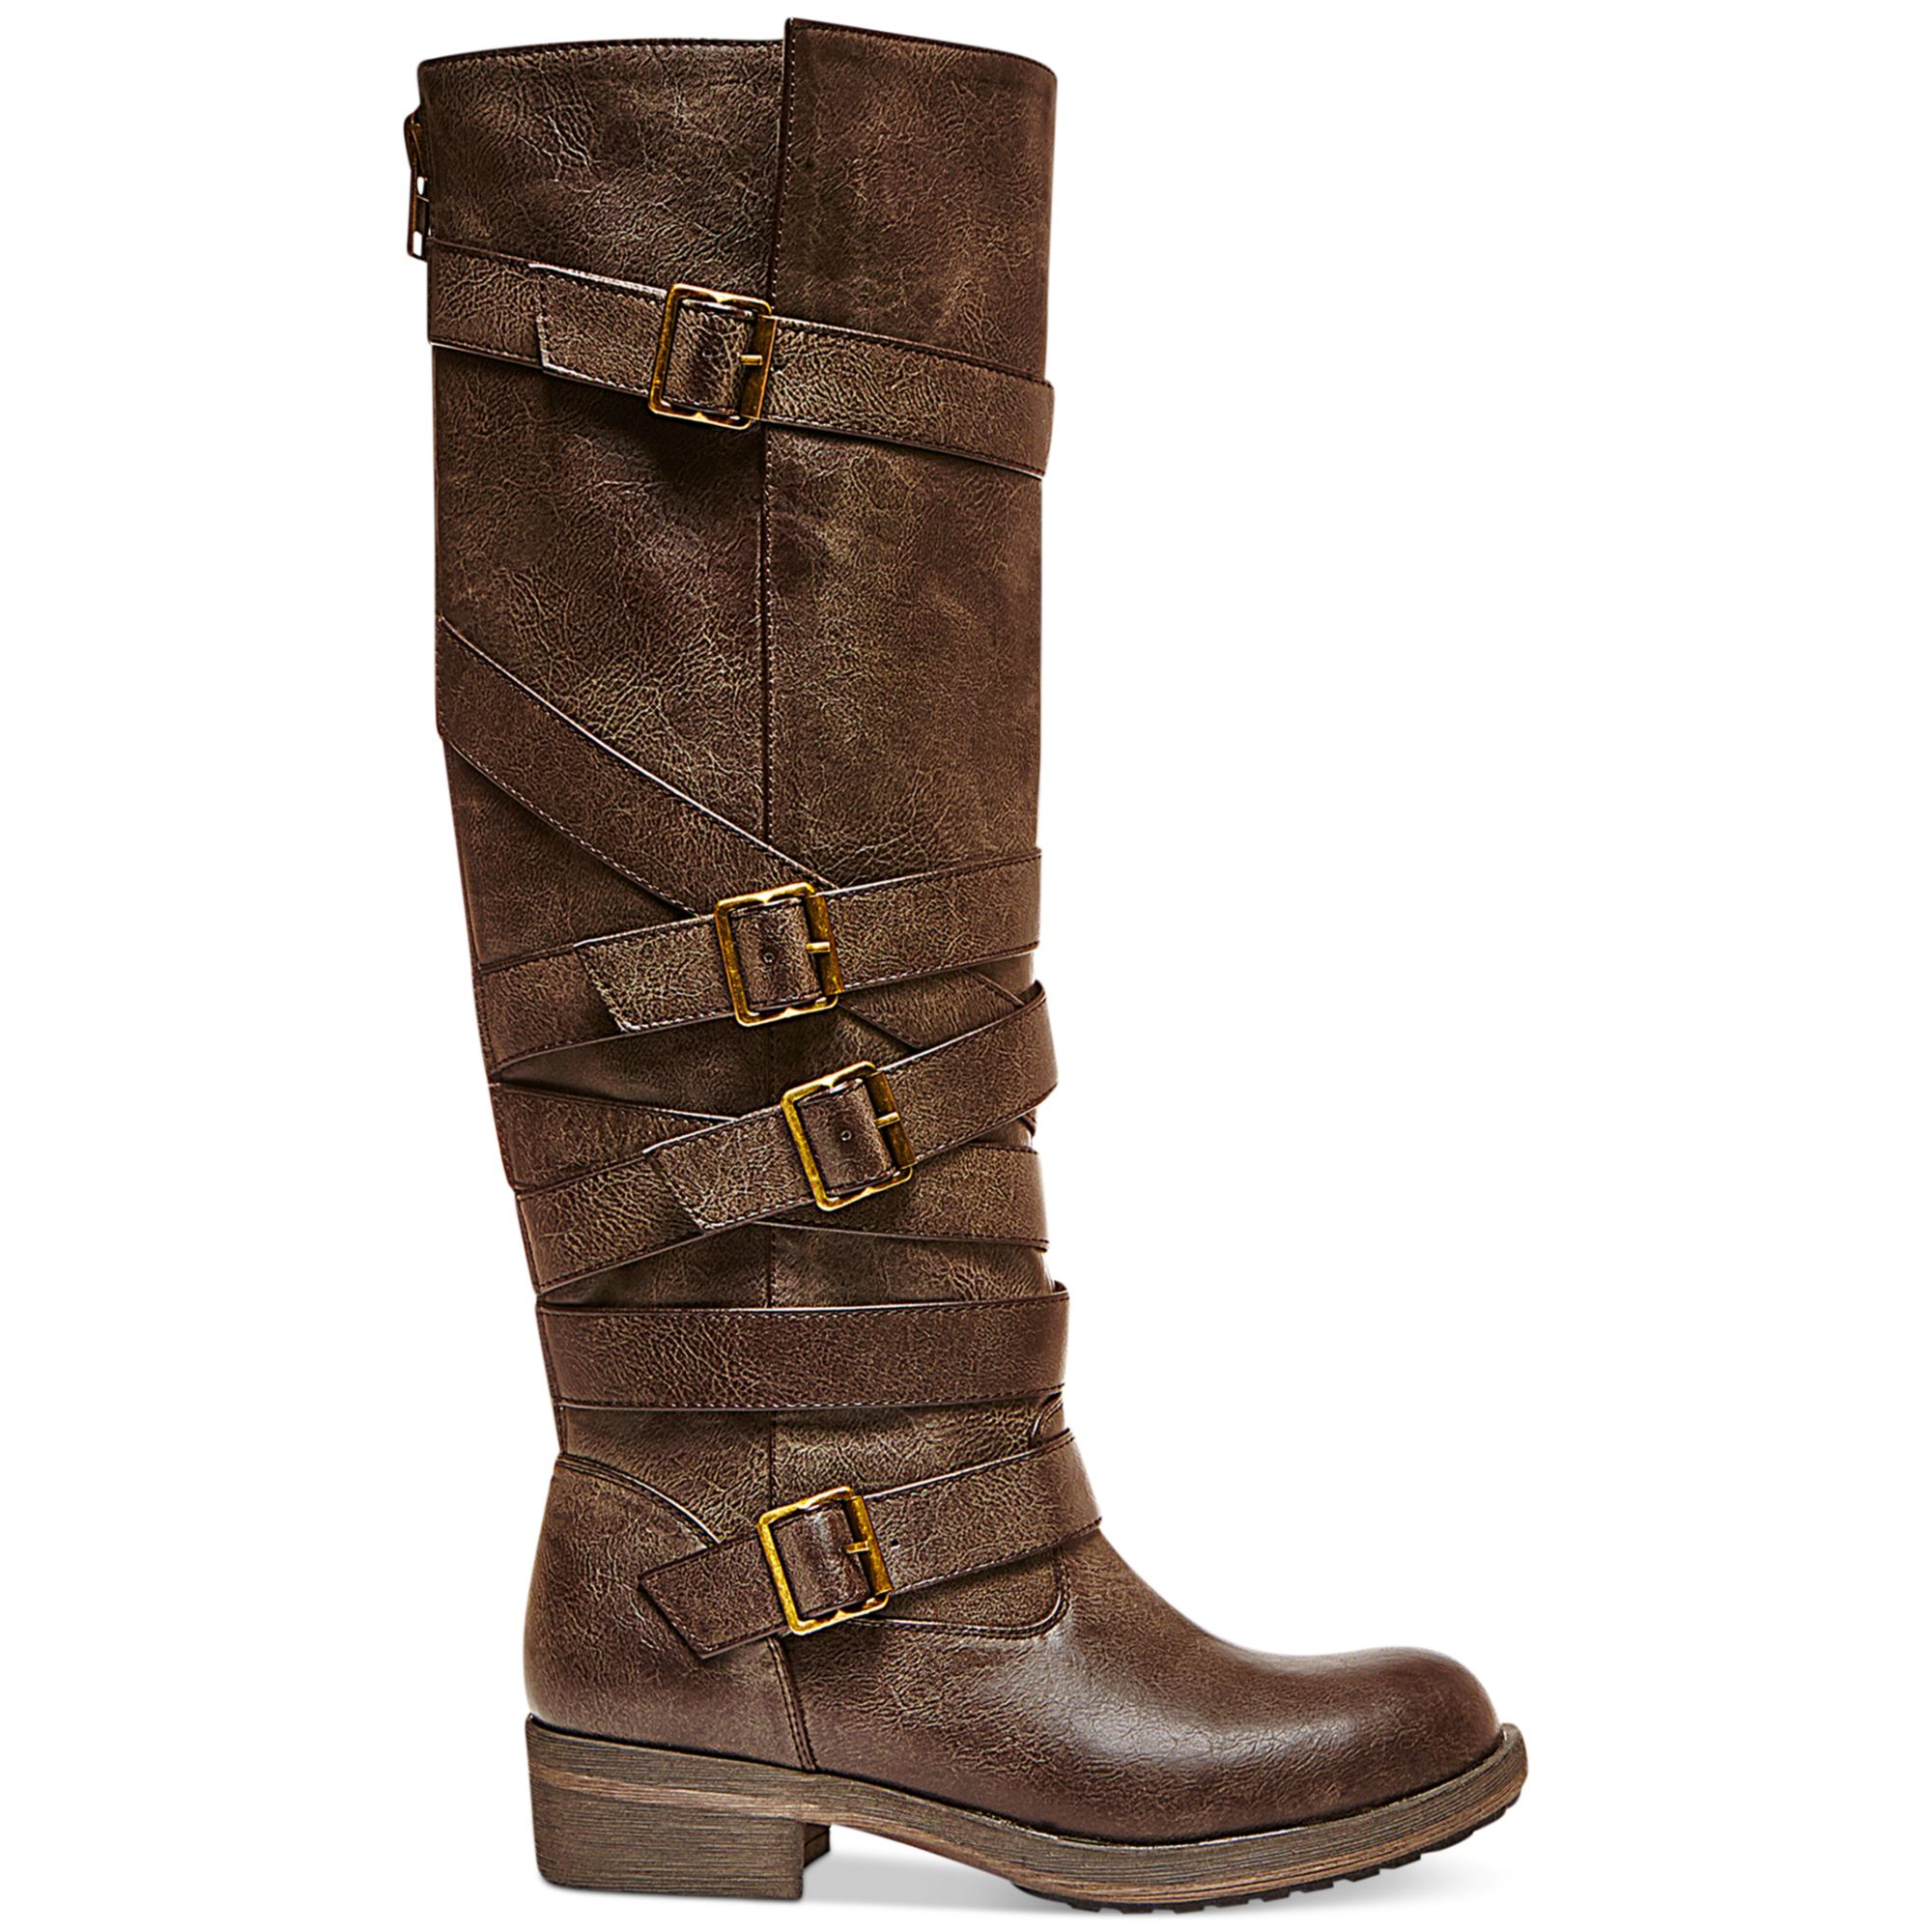 Madden Girl Lilith Tall Shaft Strapped Buckle Boots In